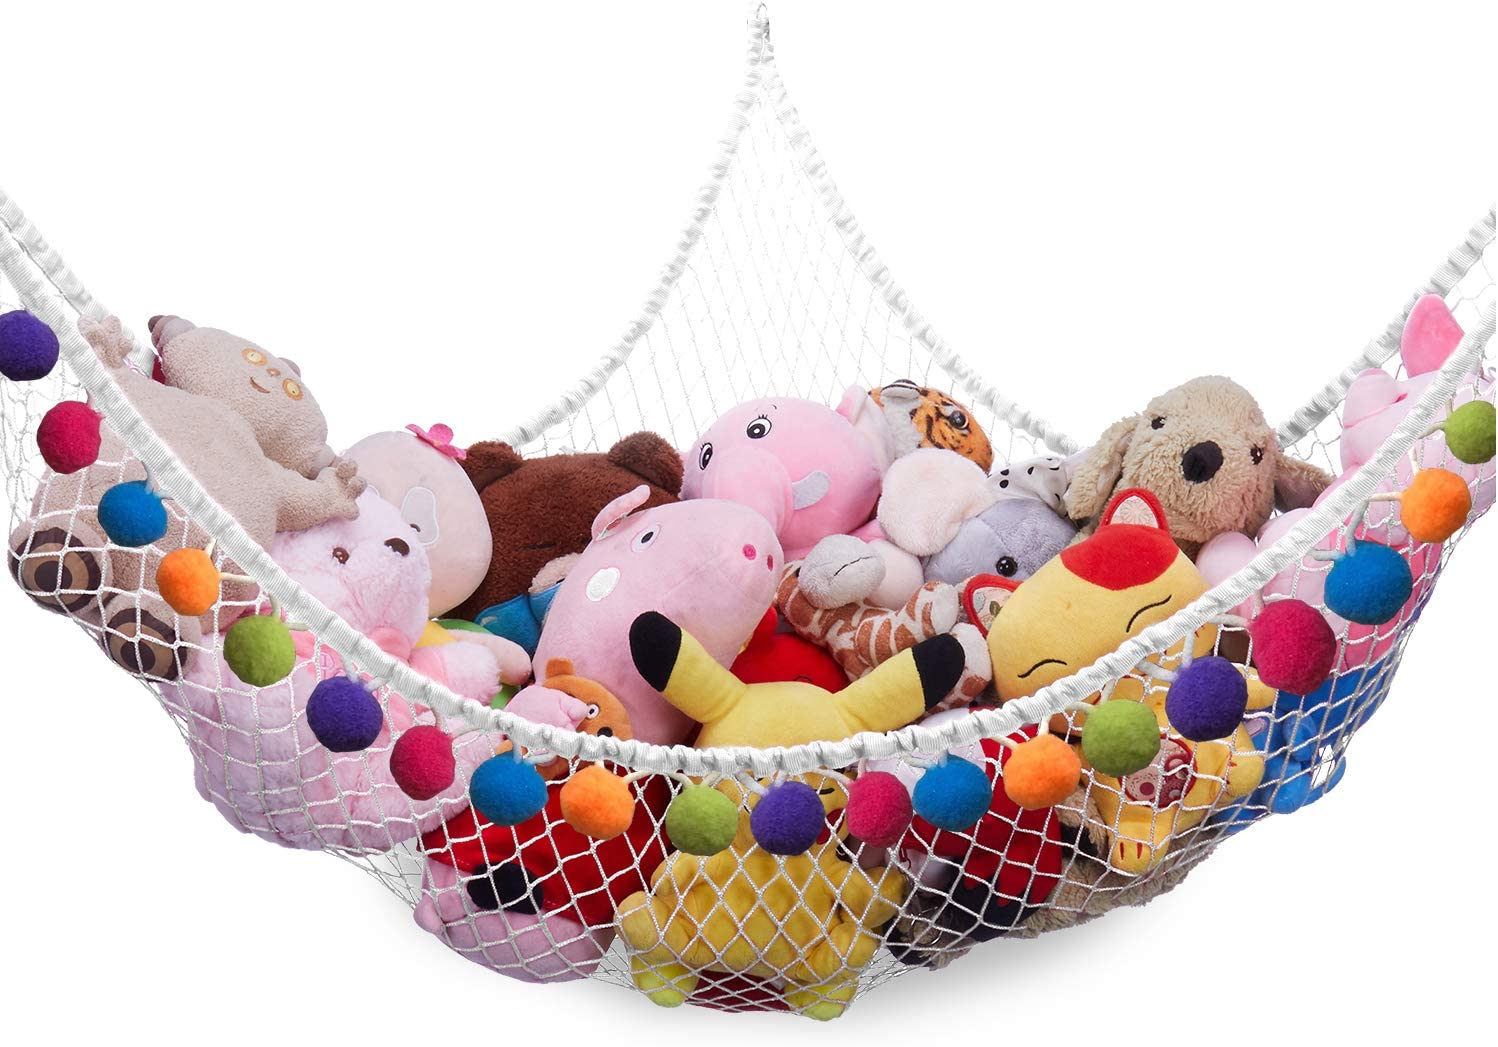 Stuffed Animal Net or Hammock LXUNYI Large Cheap SALE Start Extra Limited time trial price Toy M